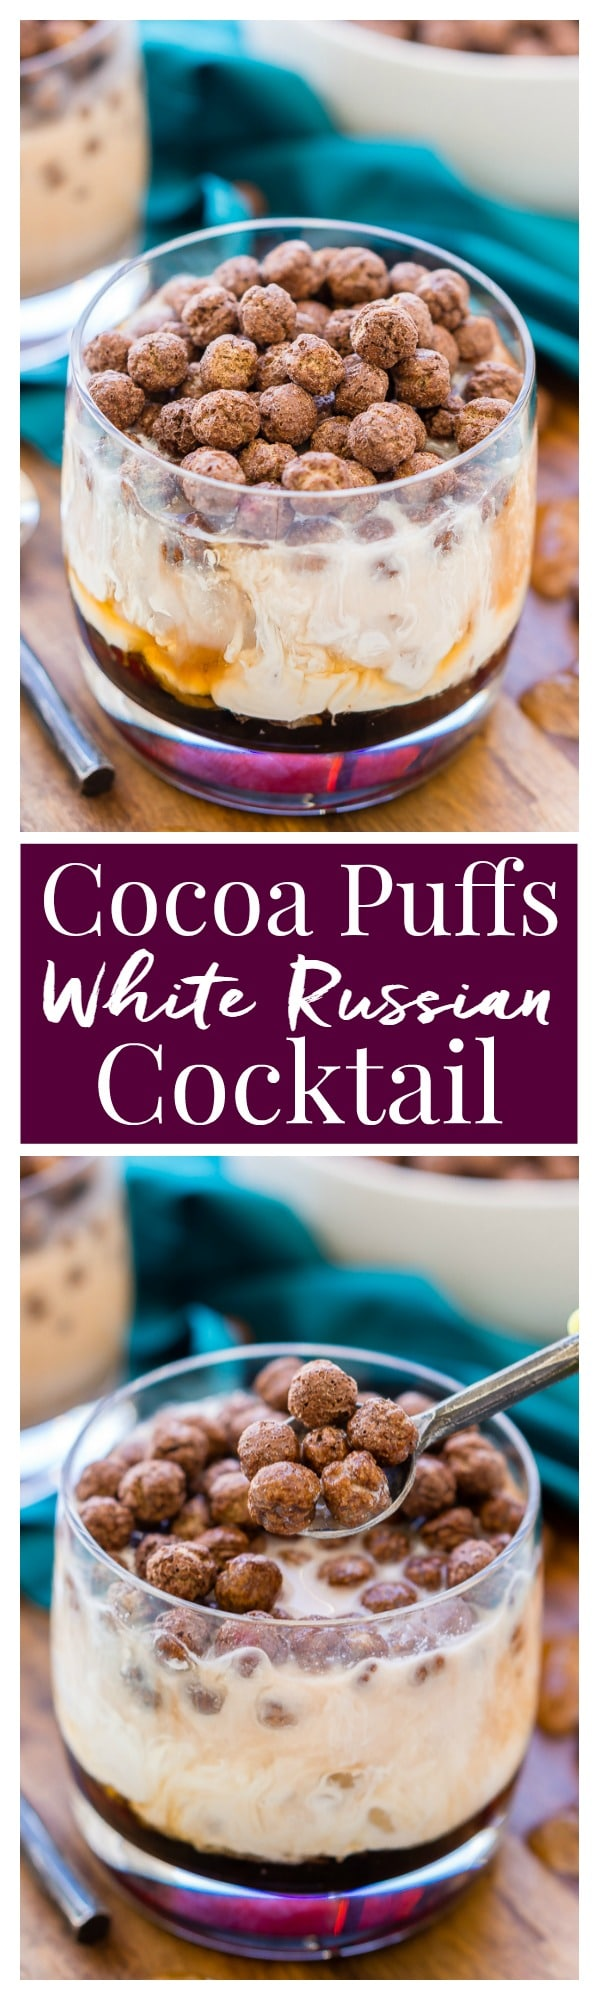 This Cocoa Puffs White Russian is a fun and unique twist on the classic cocktail made with Kahlua, vodka, cream and cocoa puffs. Perfect for late nights and brunch! via @sugarandsoulco